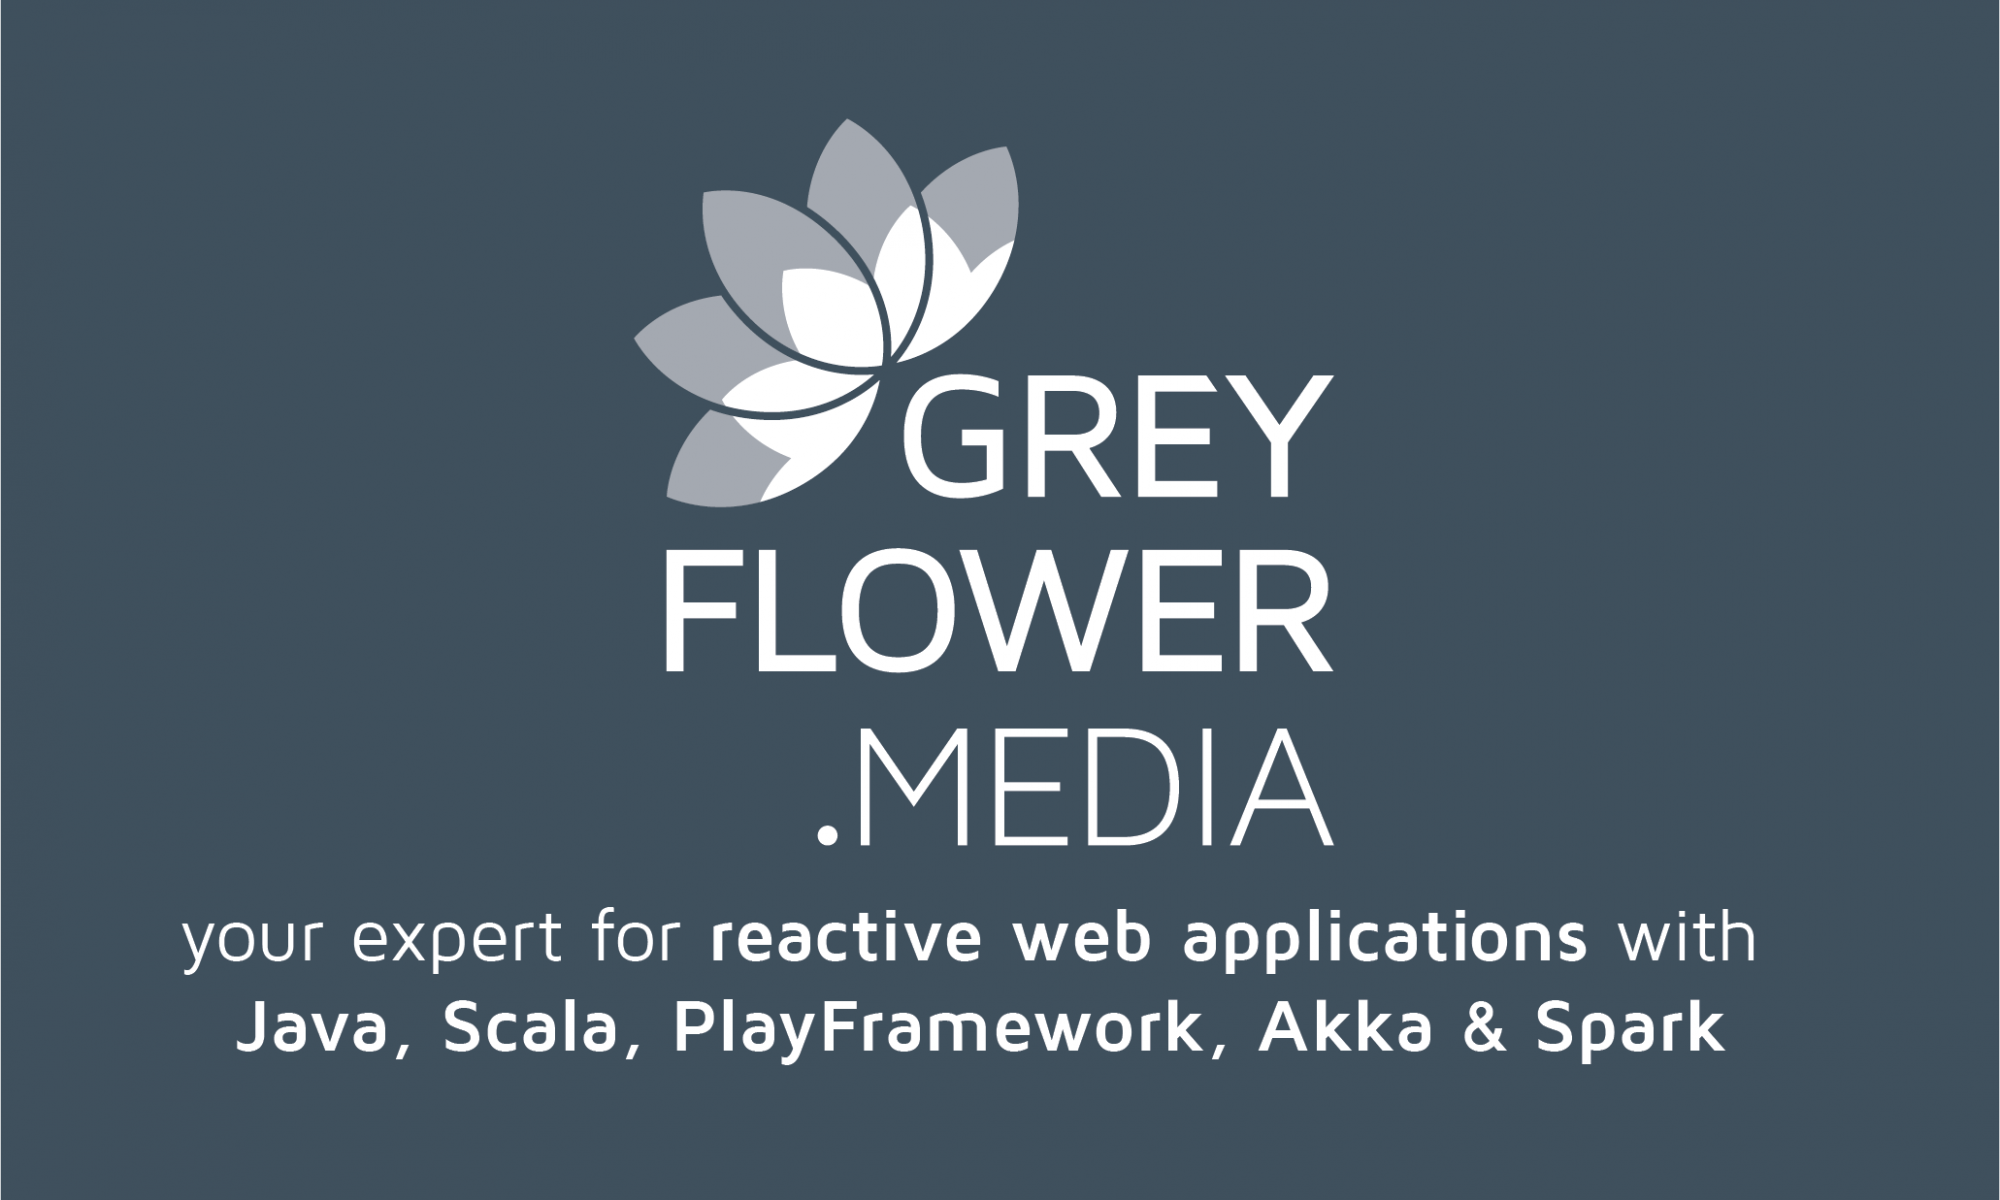 greyflower.media GmbH